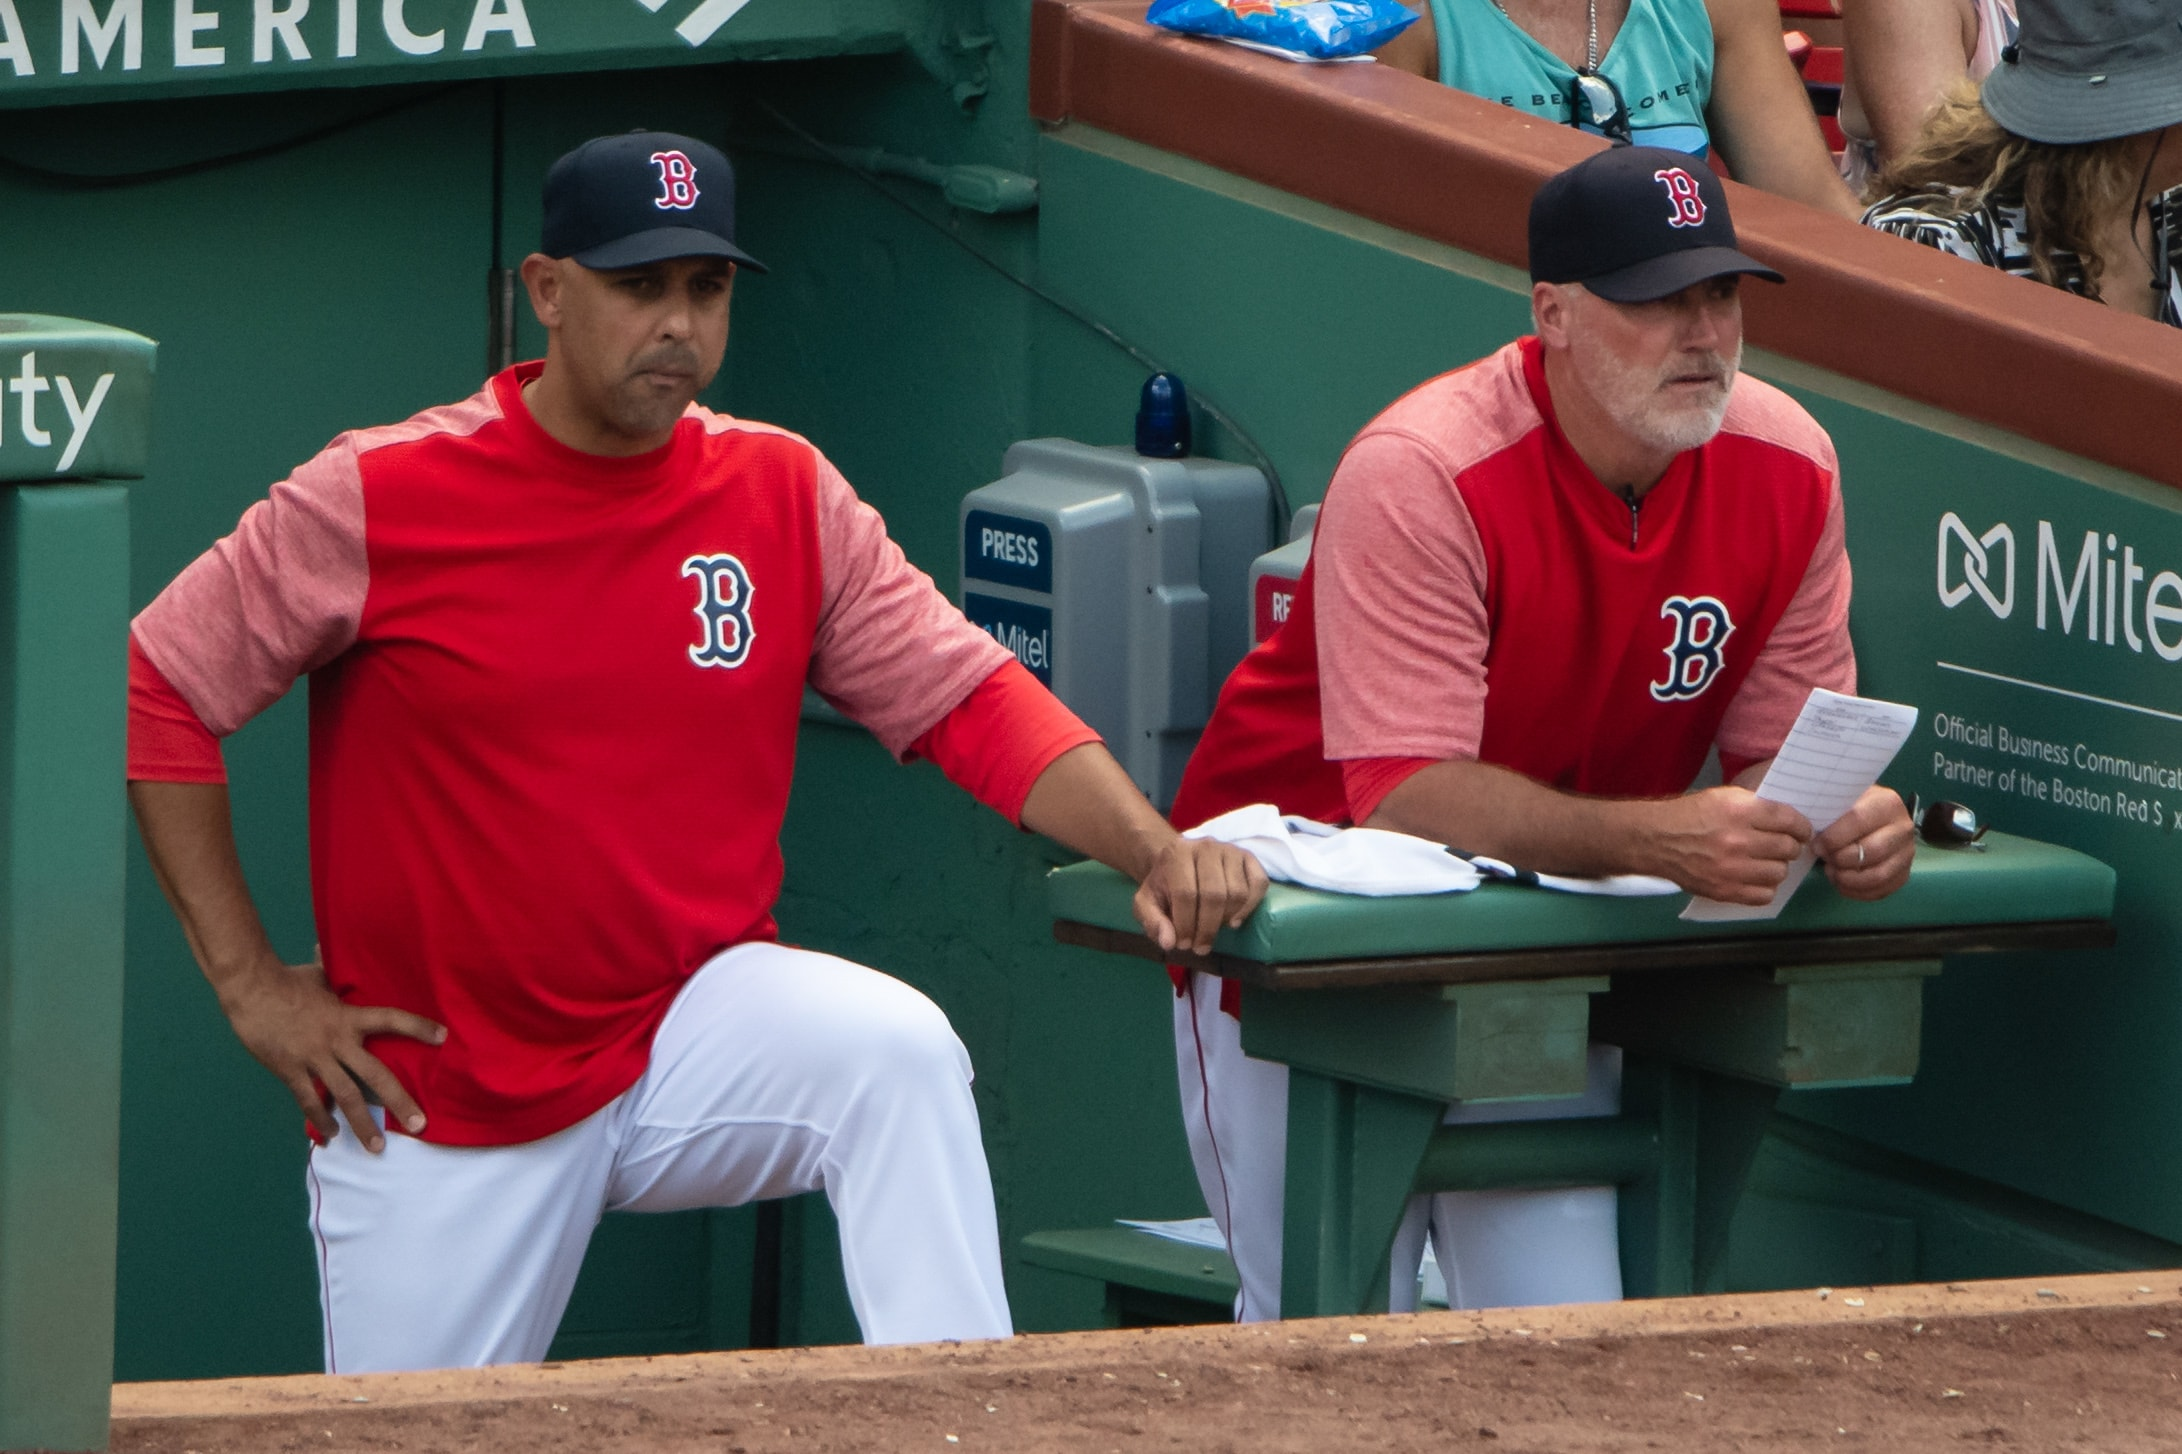 Report: divisions existed in Red Sox organization over pitching analytics